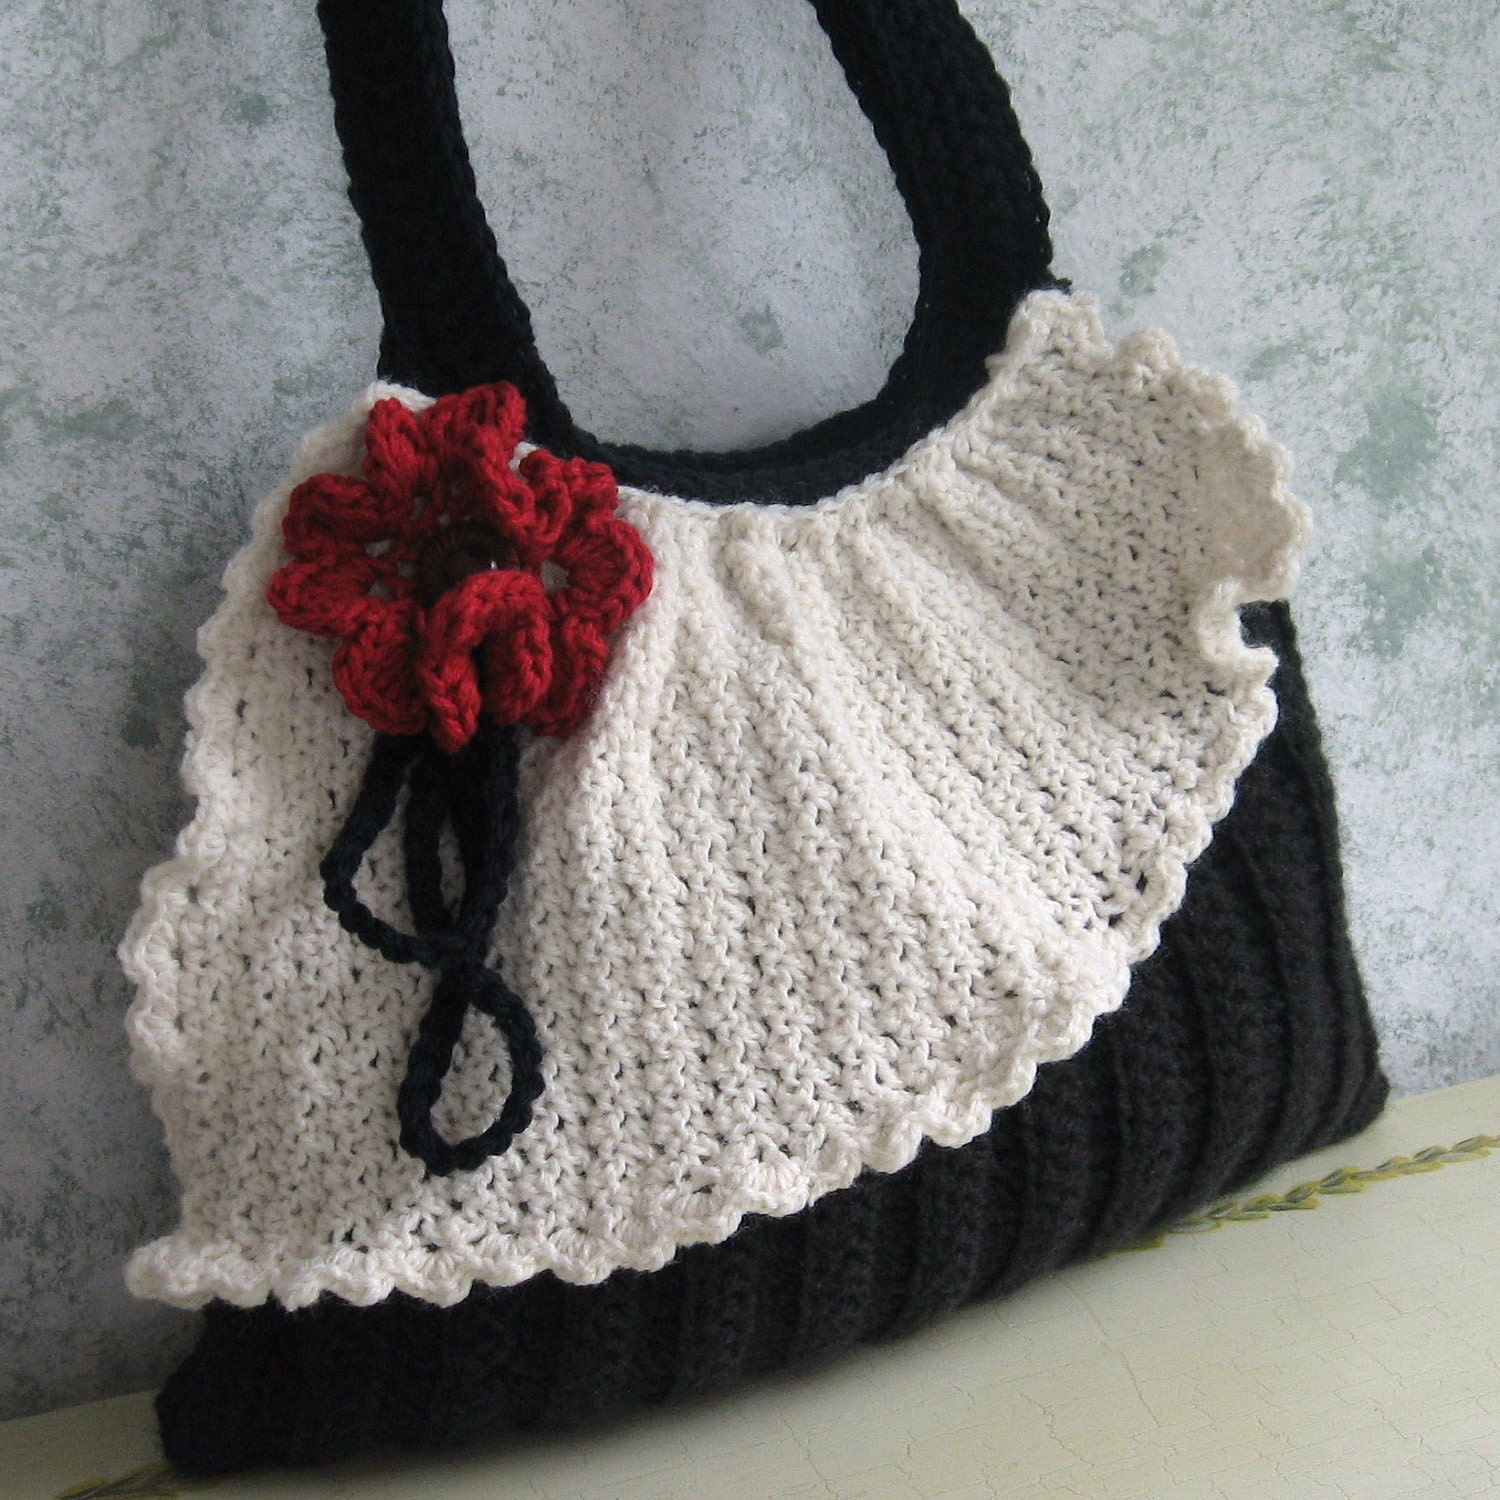 Crochet Designs For Bags : Crochet Purse Pattern Pleated Bag With Drape And by kalliedesigns